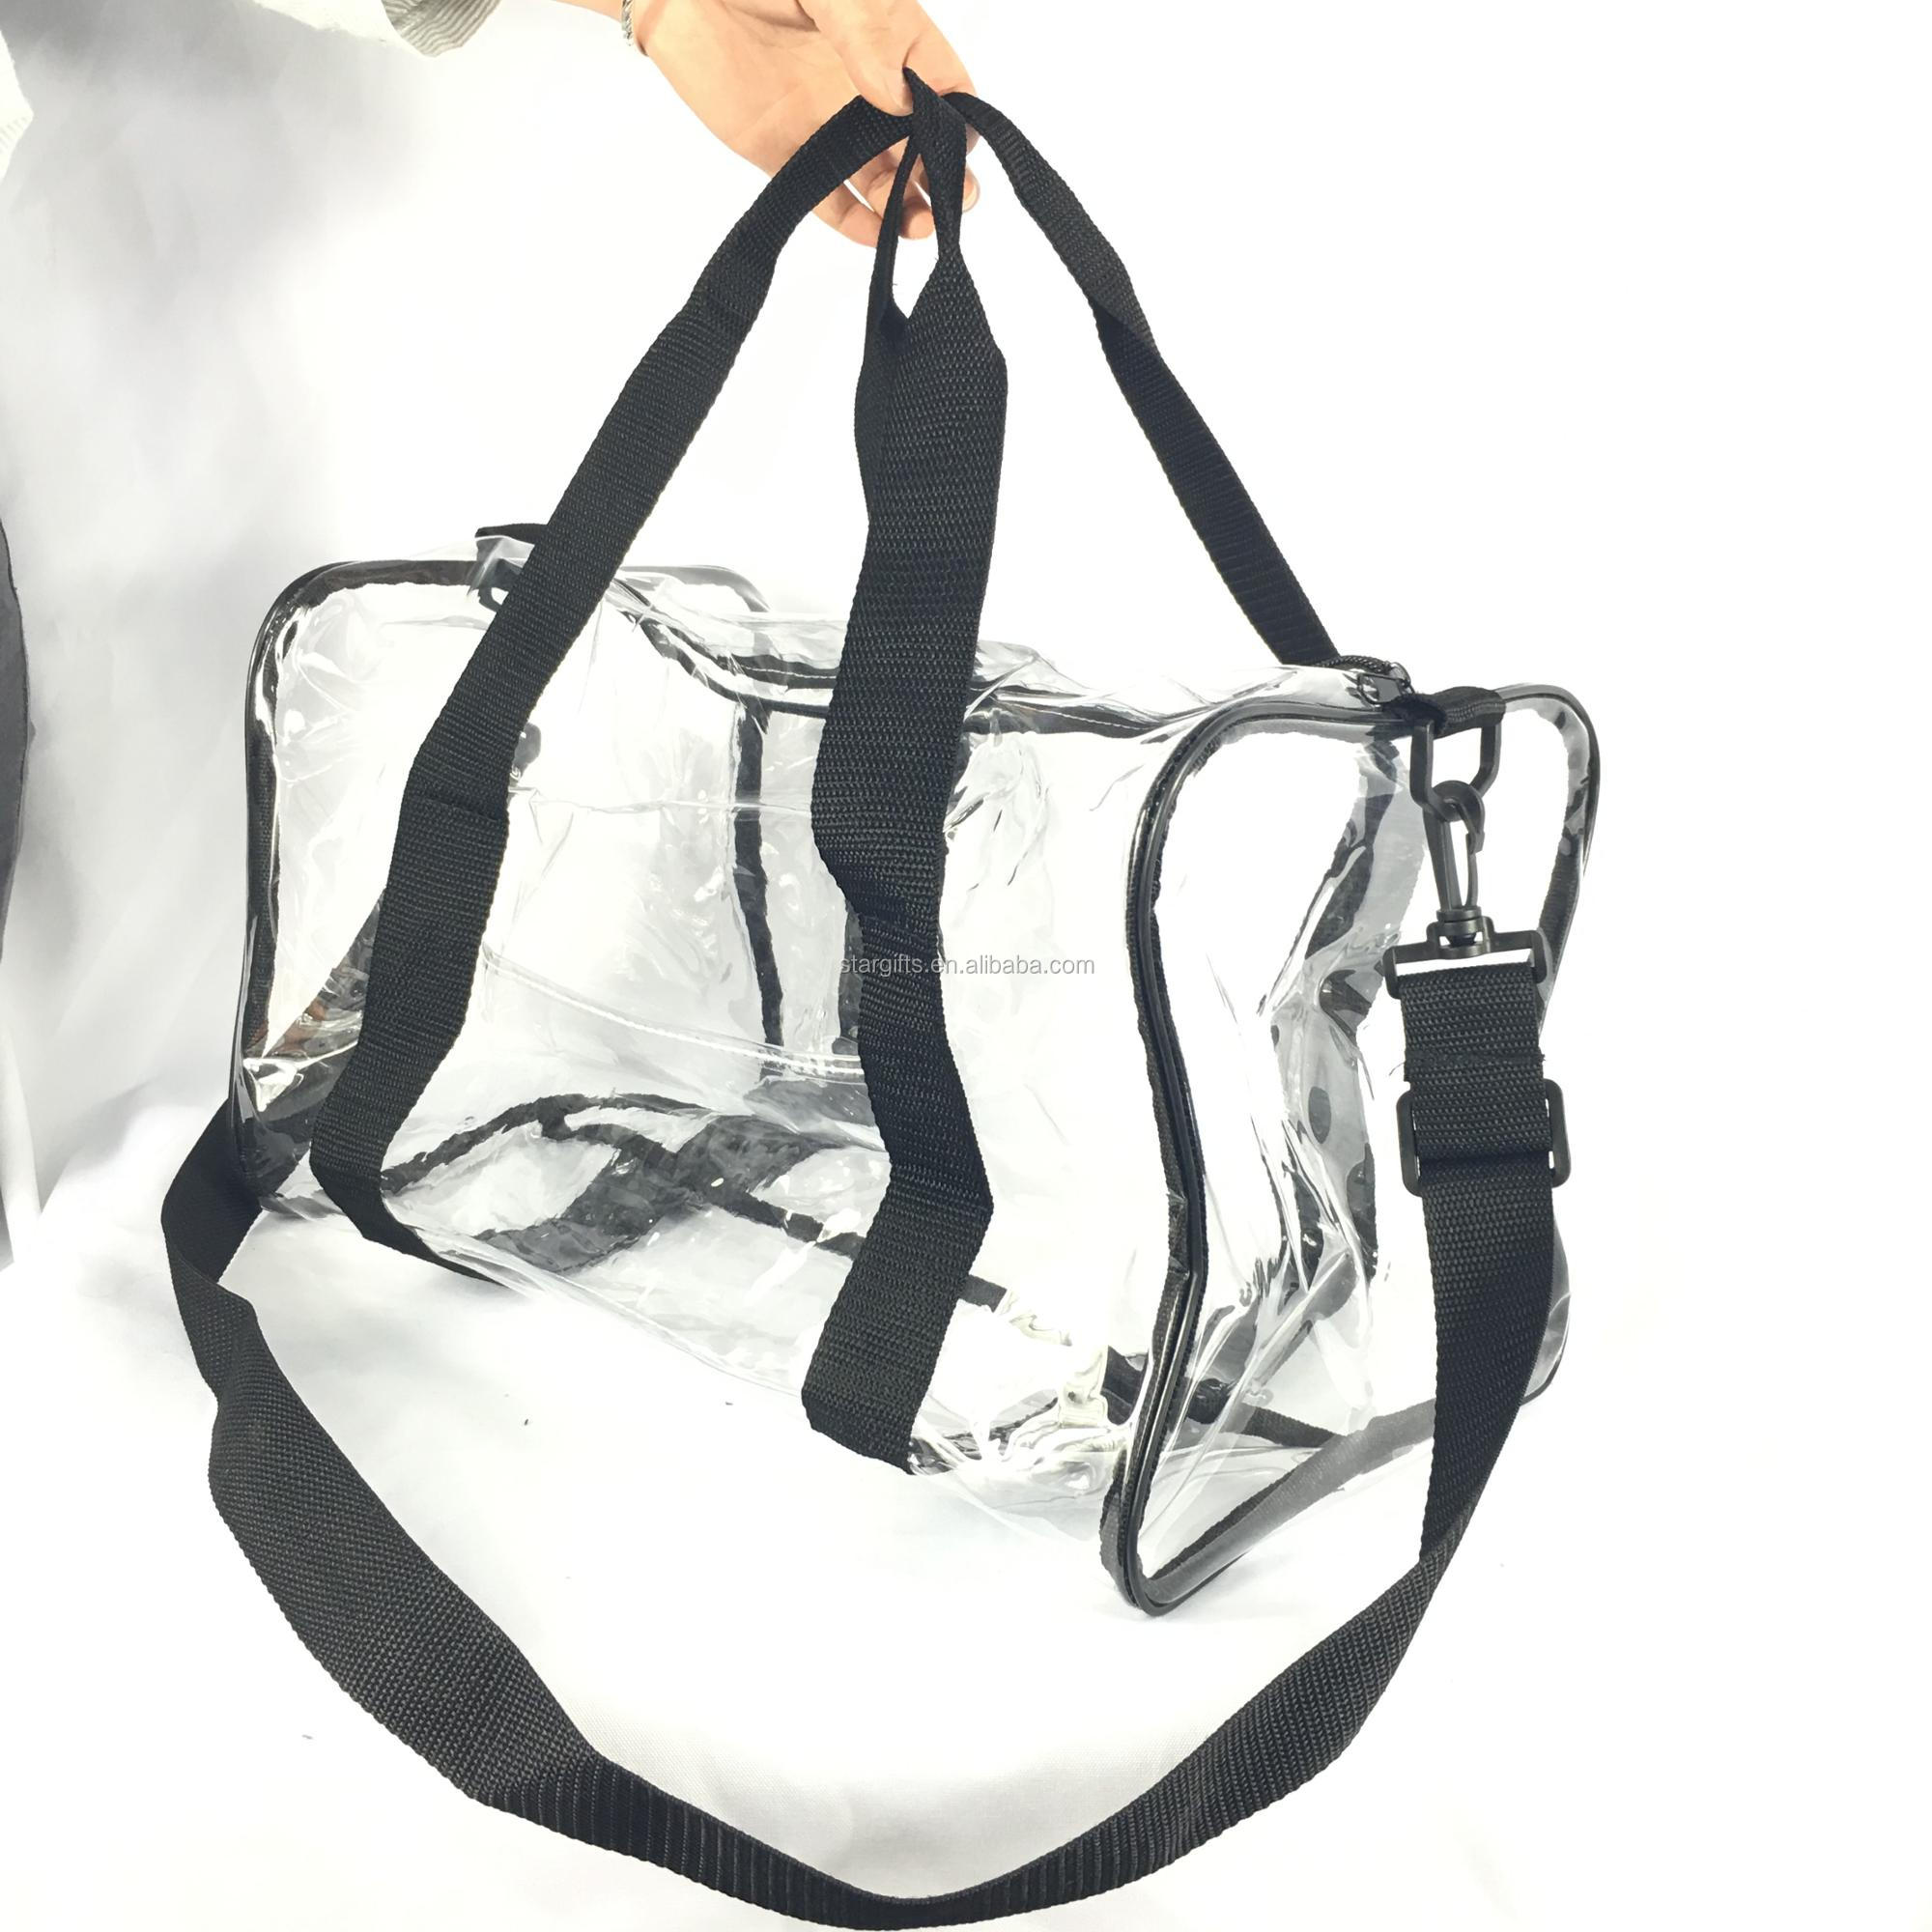 2018 Fashion Item Large Capacity Waterproof Transparent Duffle Bag